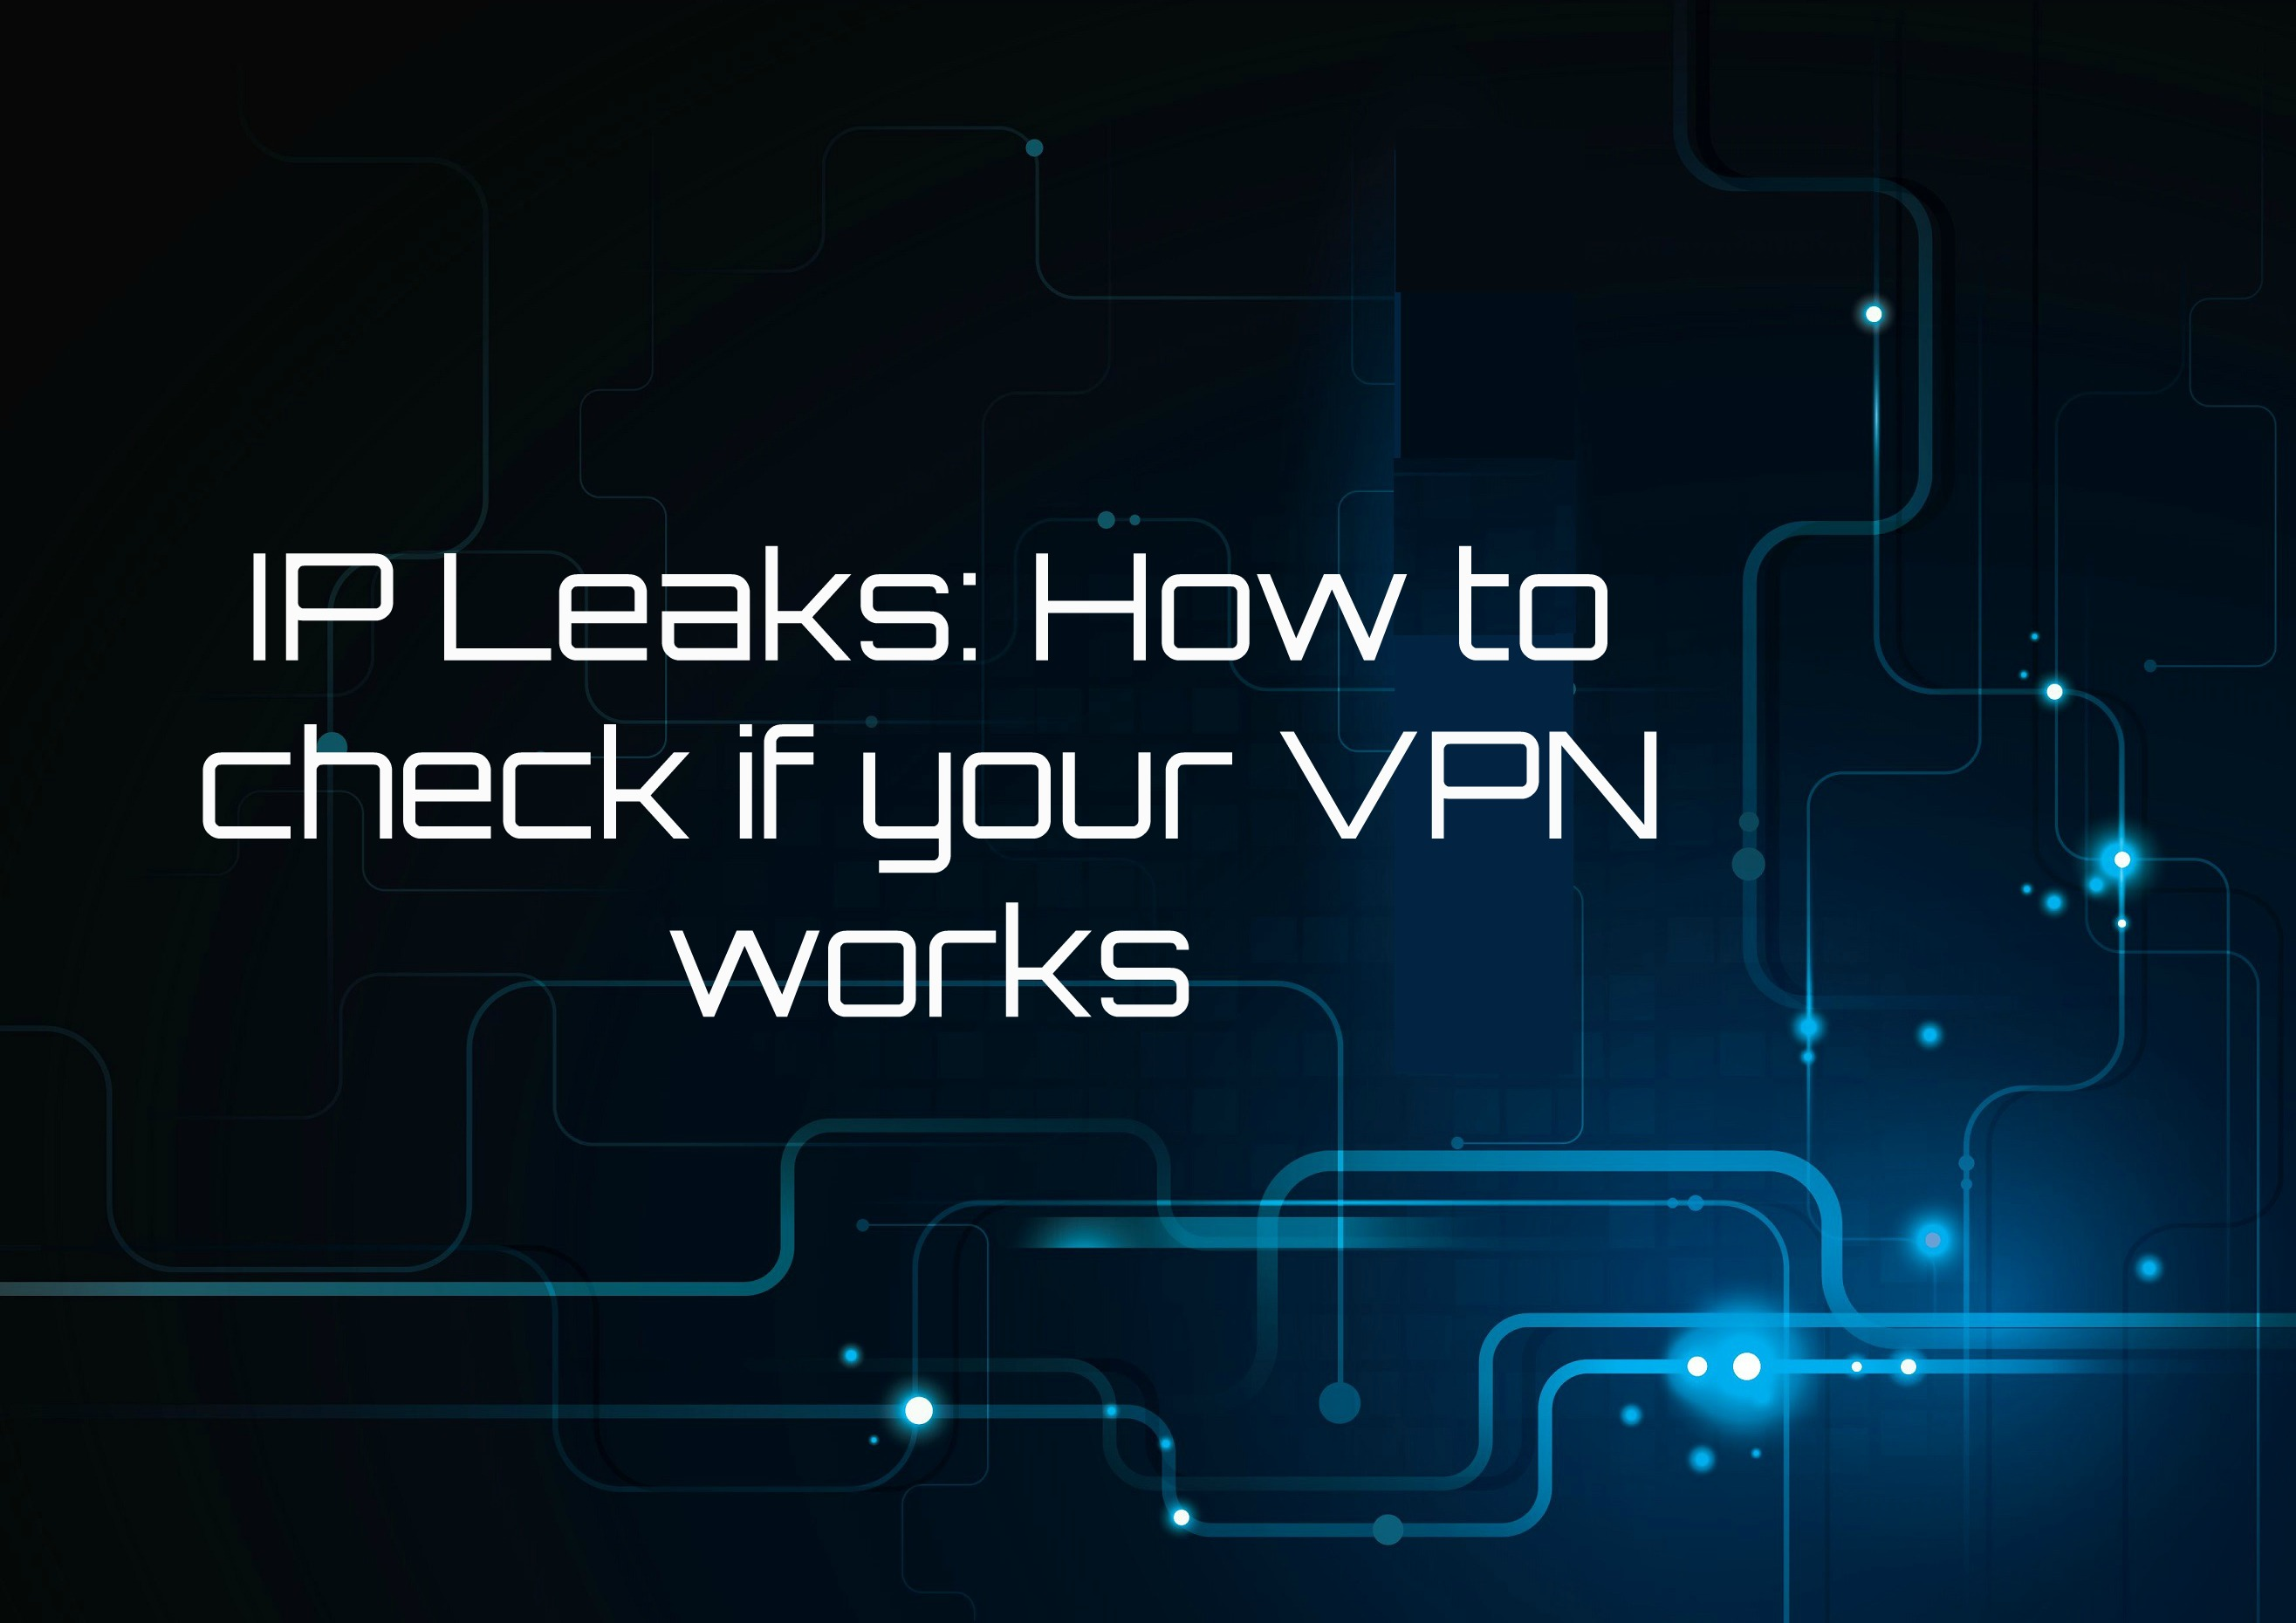 IP Leaks: How to Check if Your VPN Works